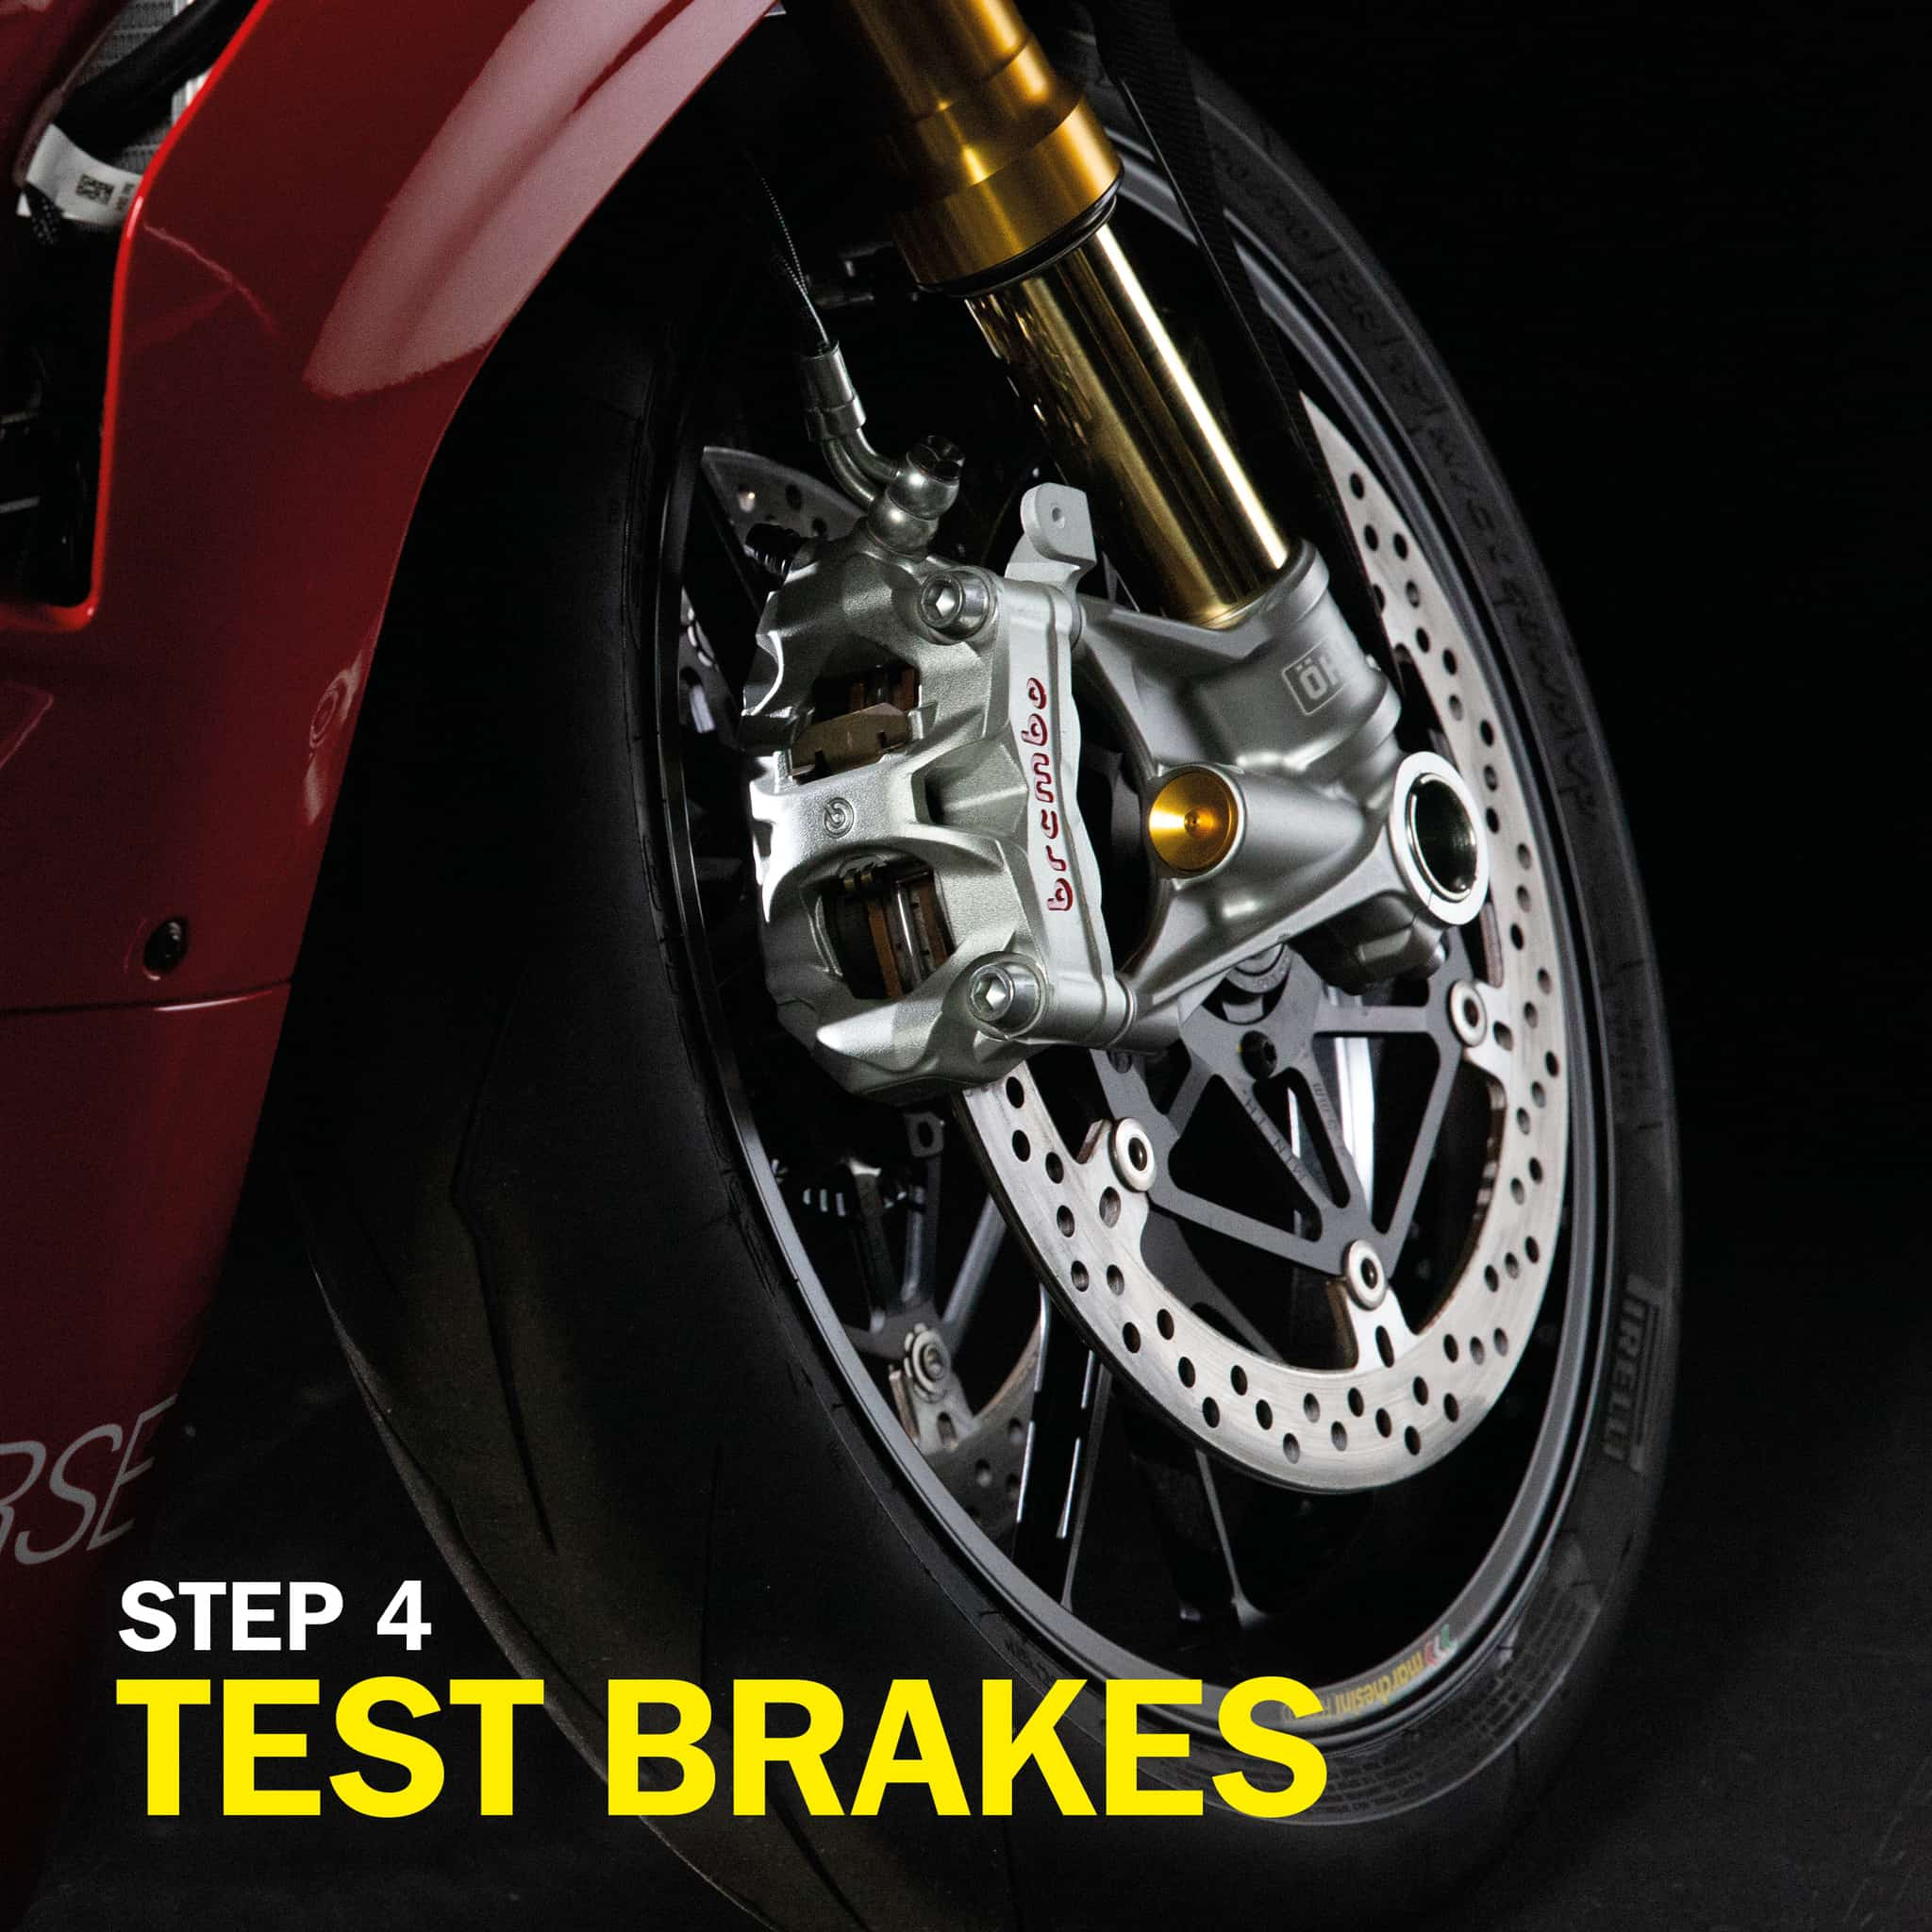 wd40 motorbike brake cleaner how to use part 7